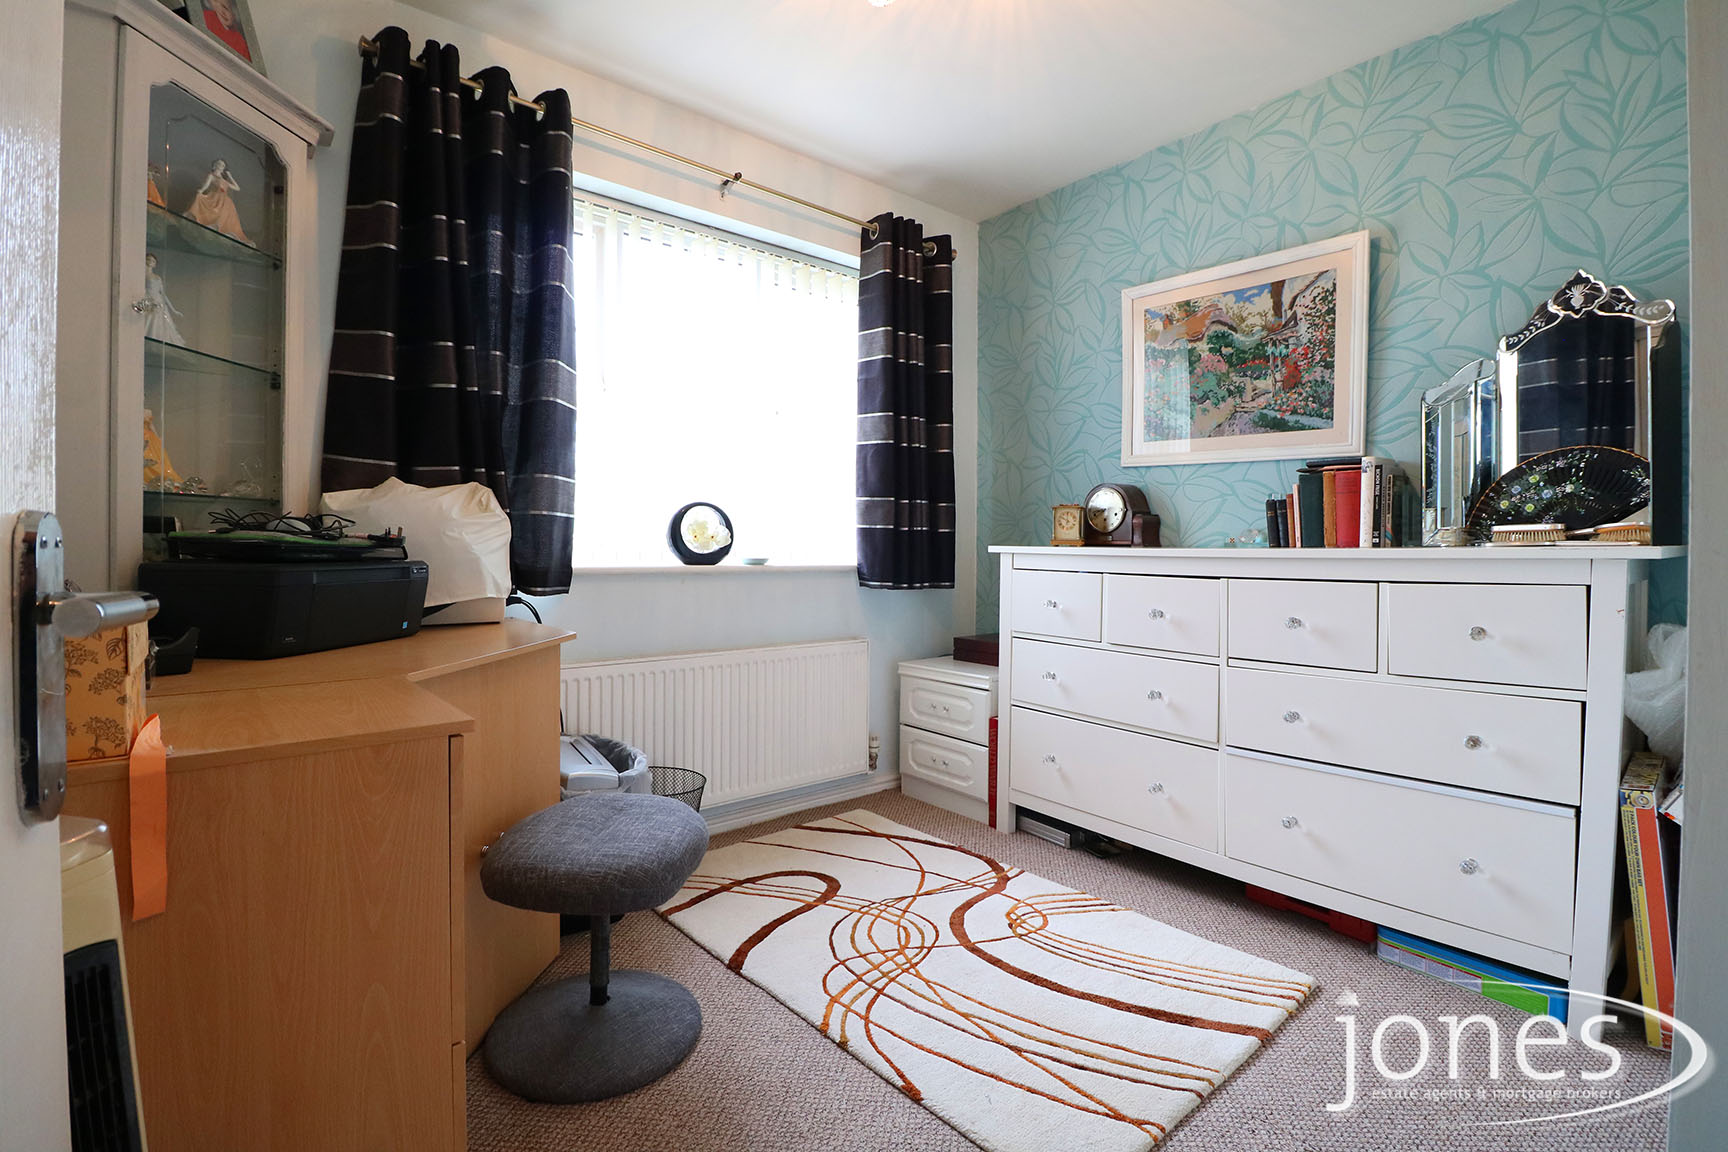 Home for Sale Let - Photo 11 West End Way, Stockton on Tees, TS18 3UA